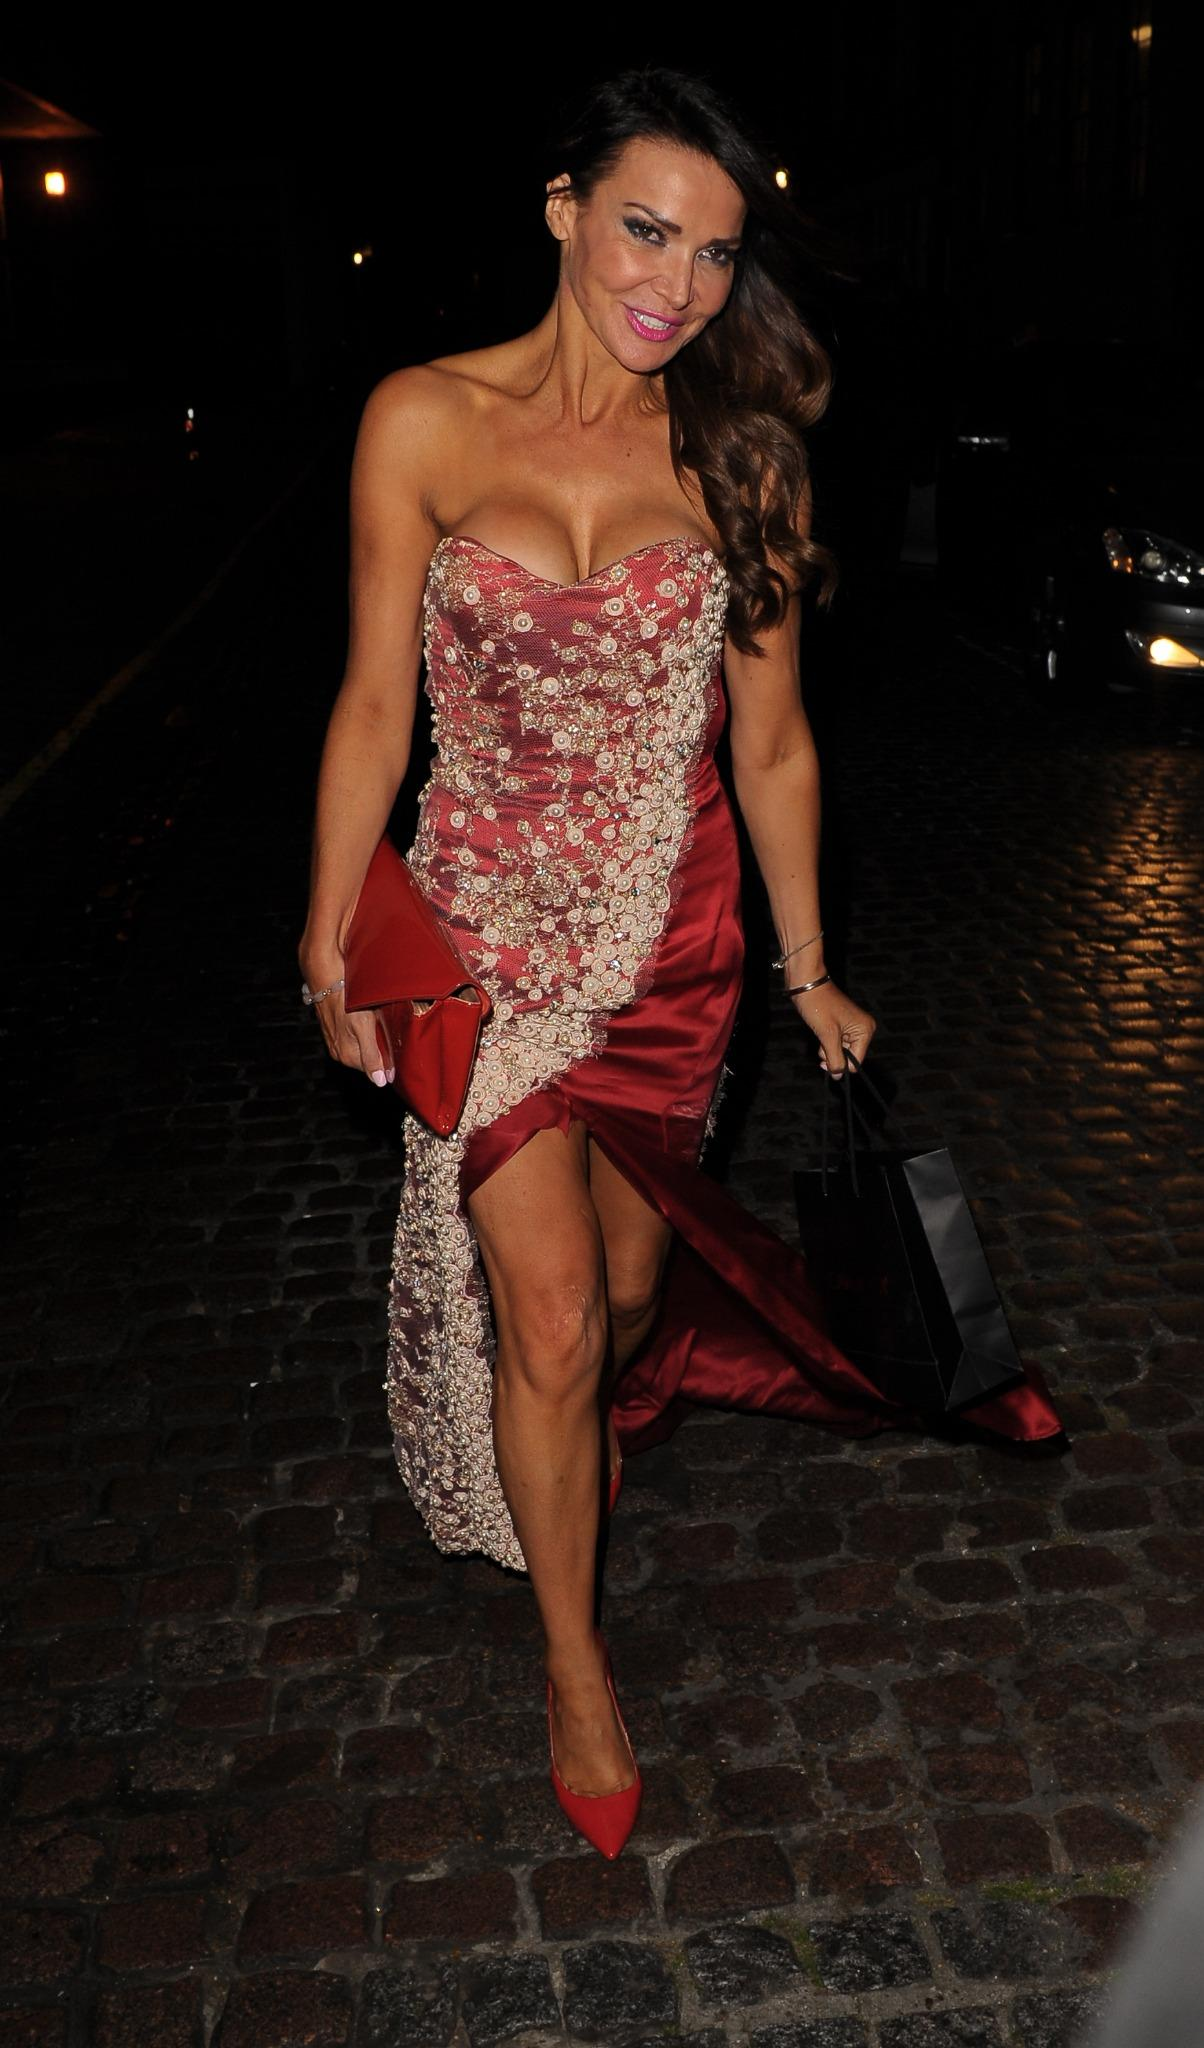 RT @hellsbe: looking amazing @lizziecundy @NinaNaustdal #fashionshow #LFW http://t.co/YOVr1wsosG